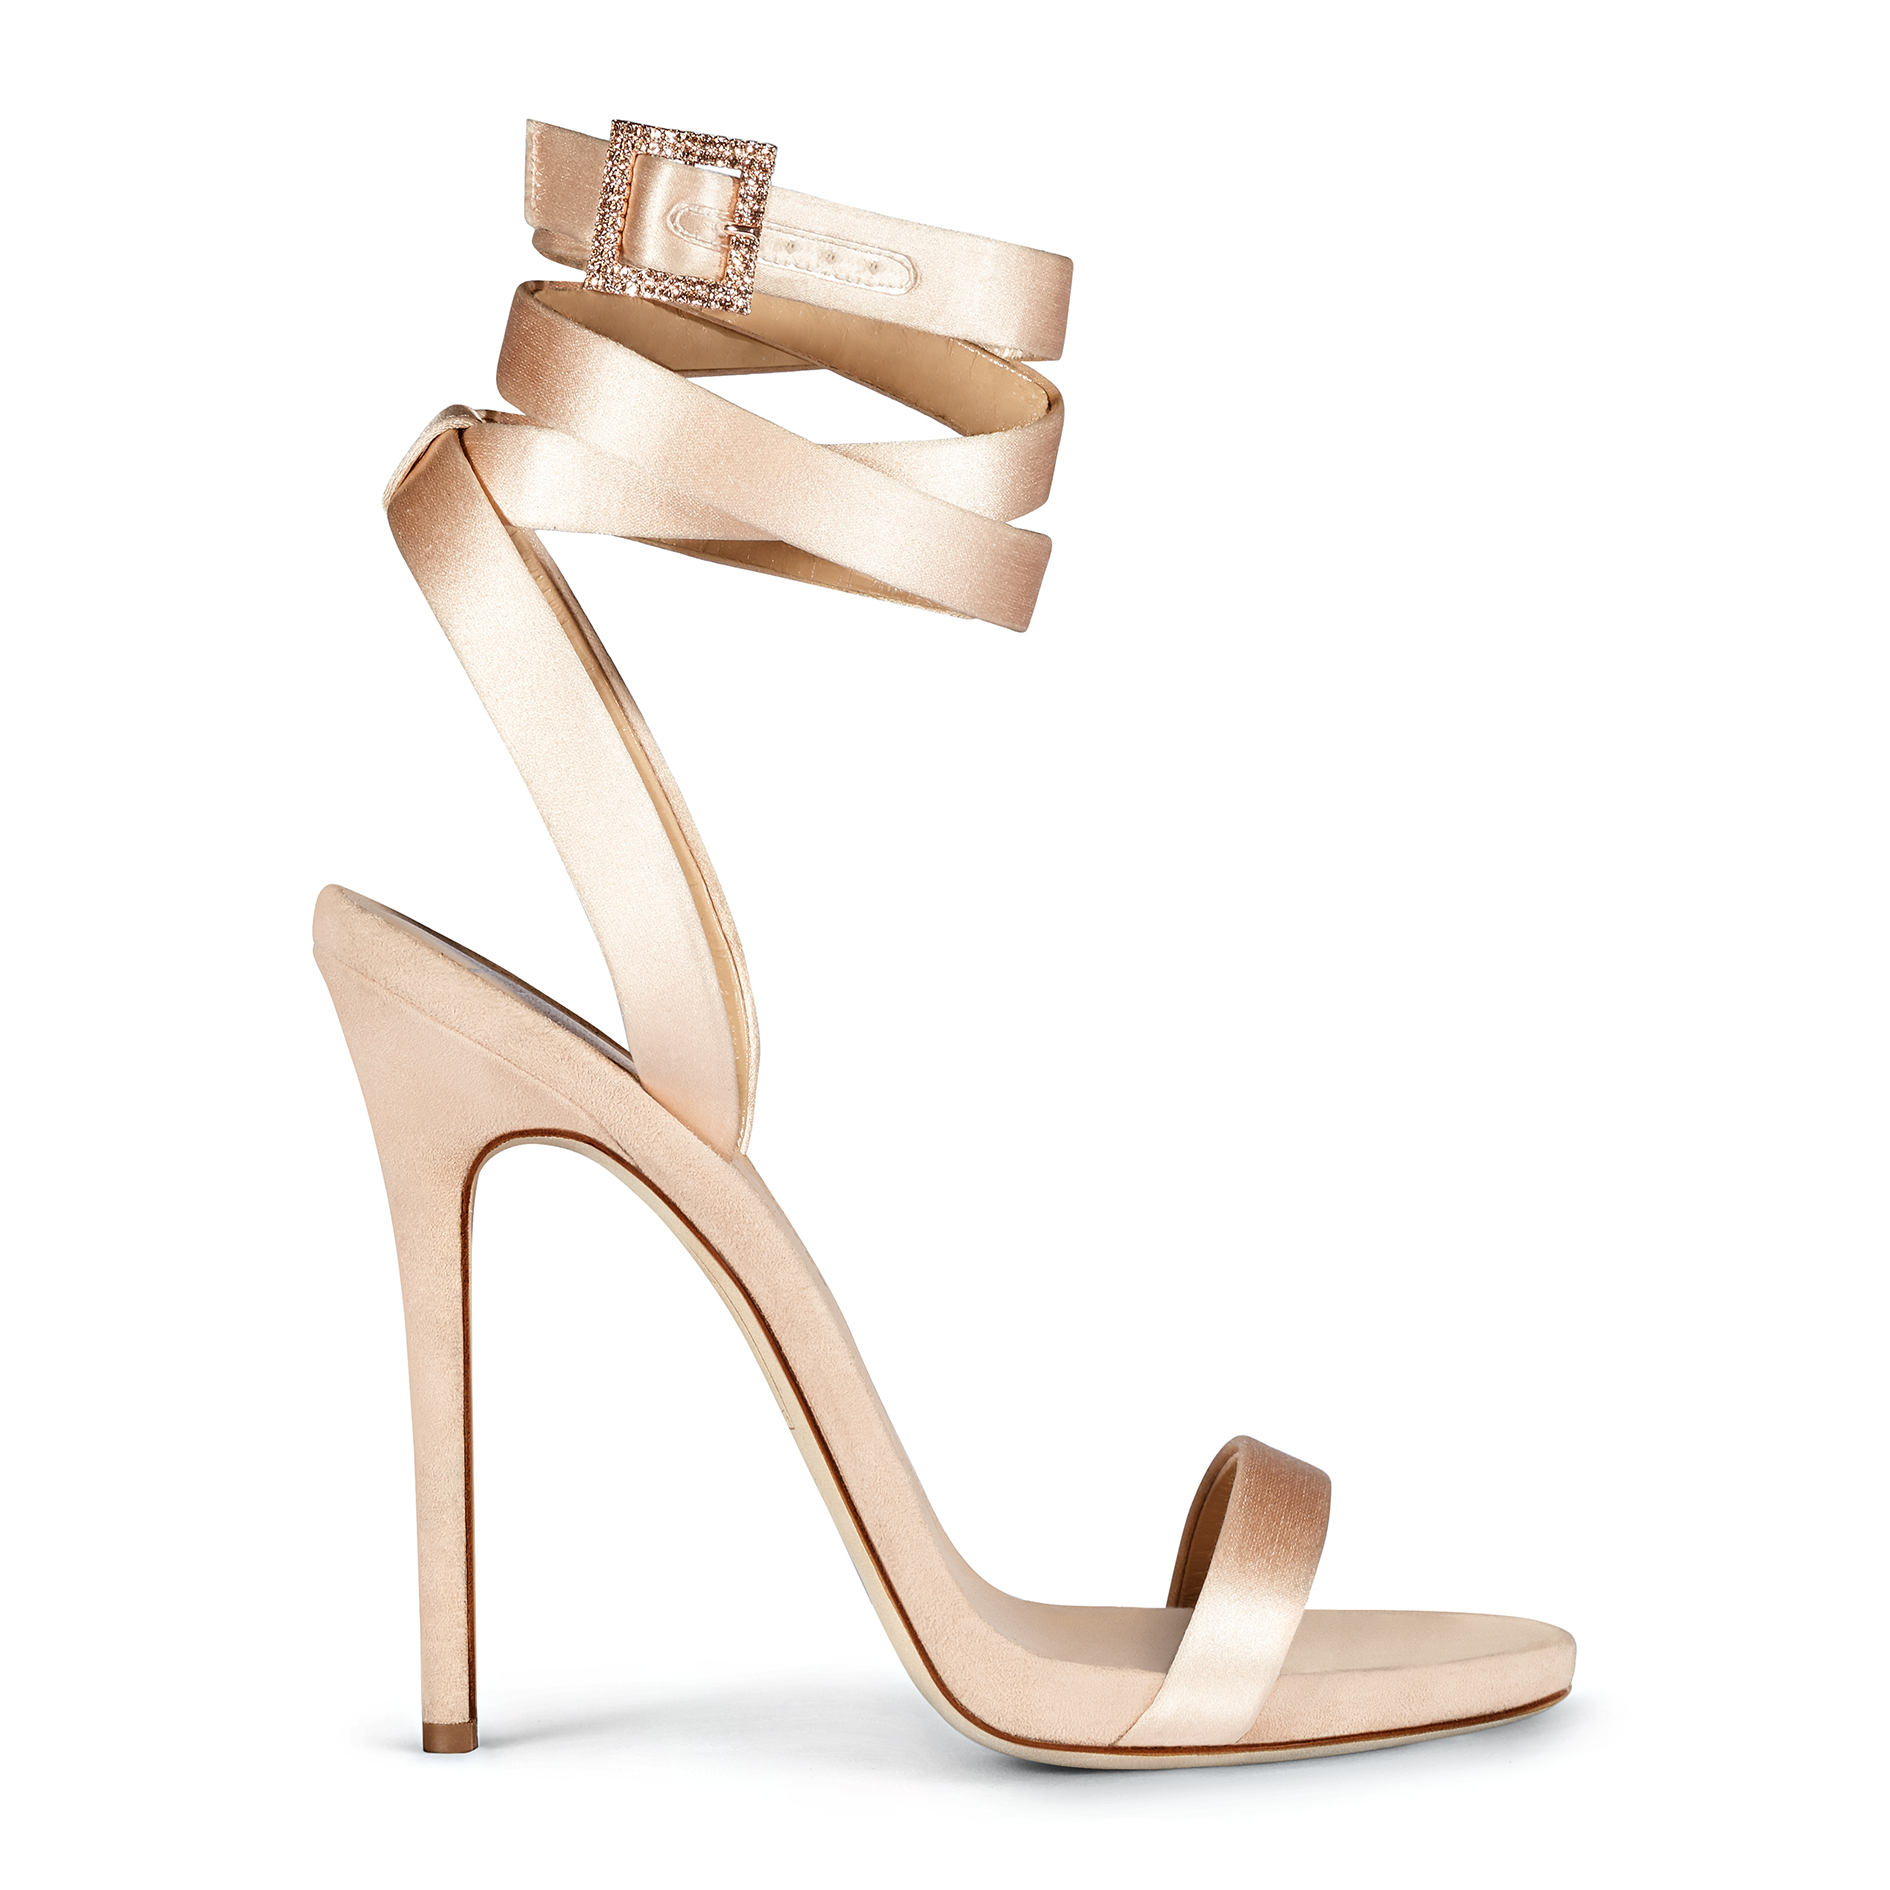 Giuseppe Zanotti sandal. no credit. used only for the 1/30 style- Jennifer Lopez Story. Must contact Sharon.Kanter@peoplemag.com